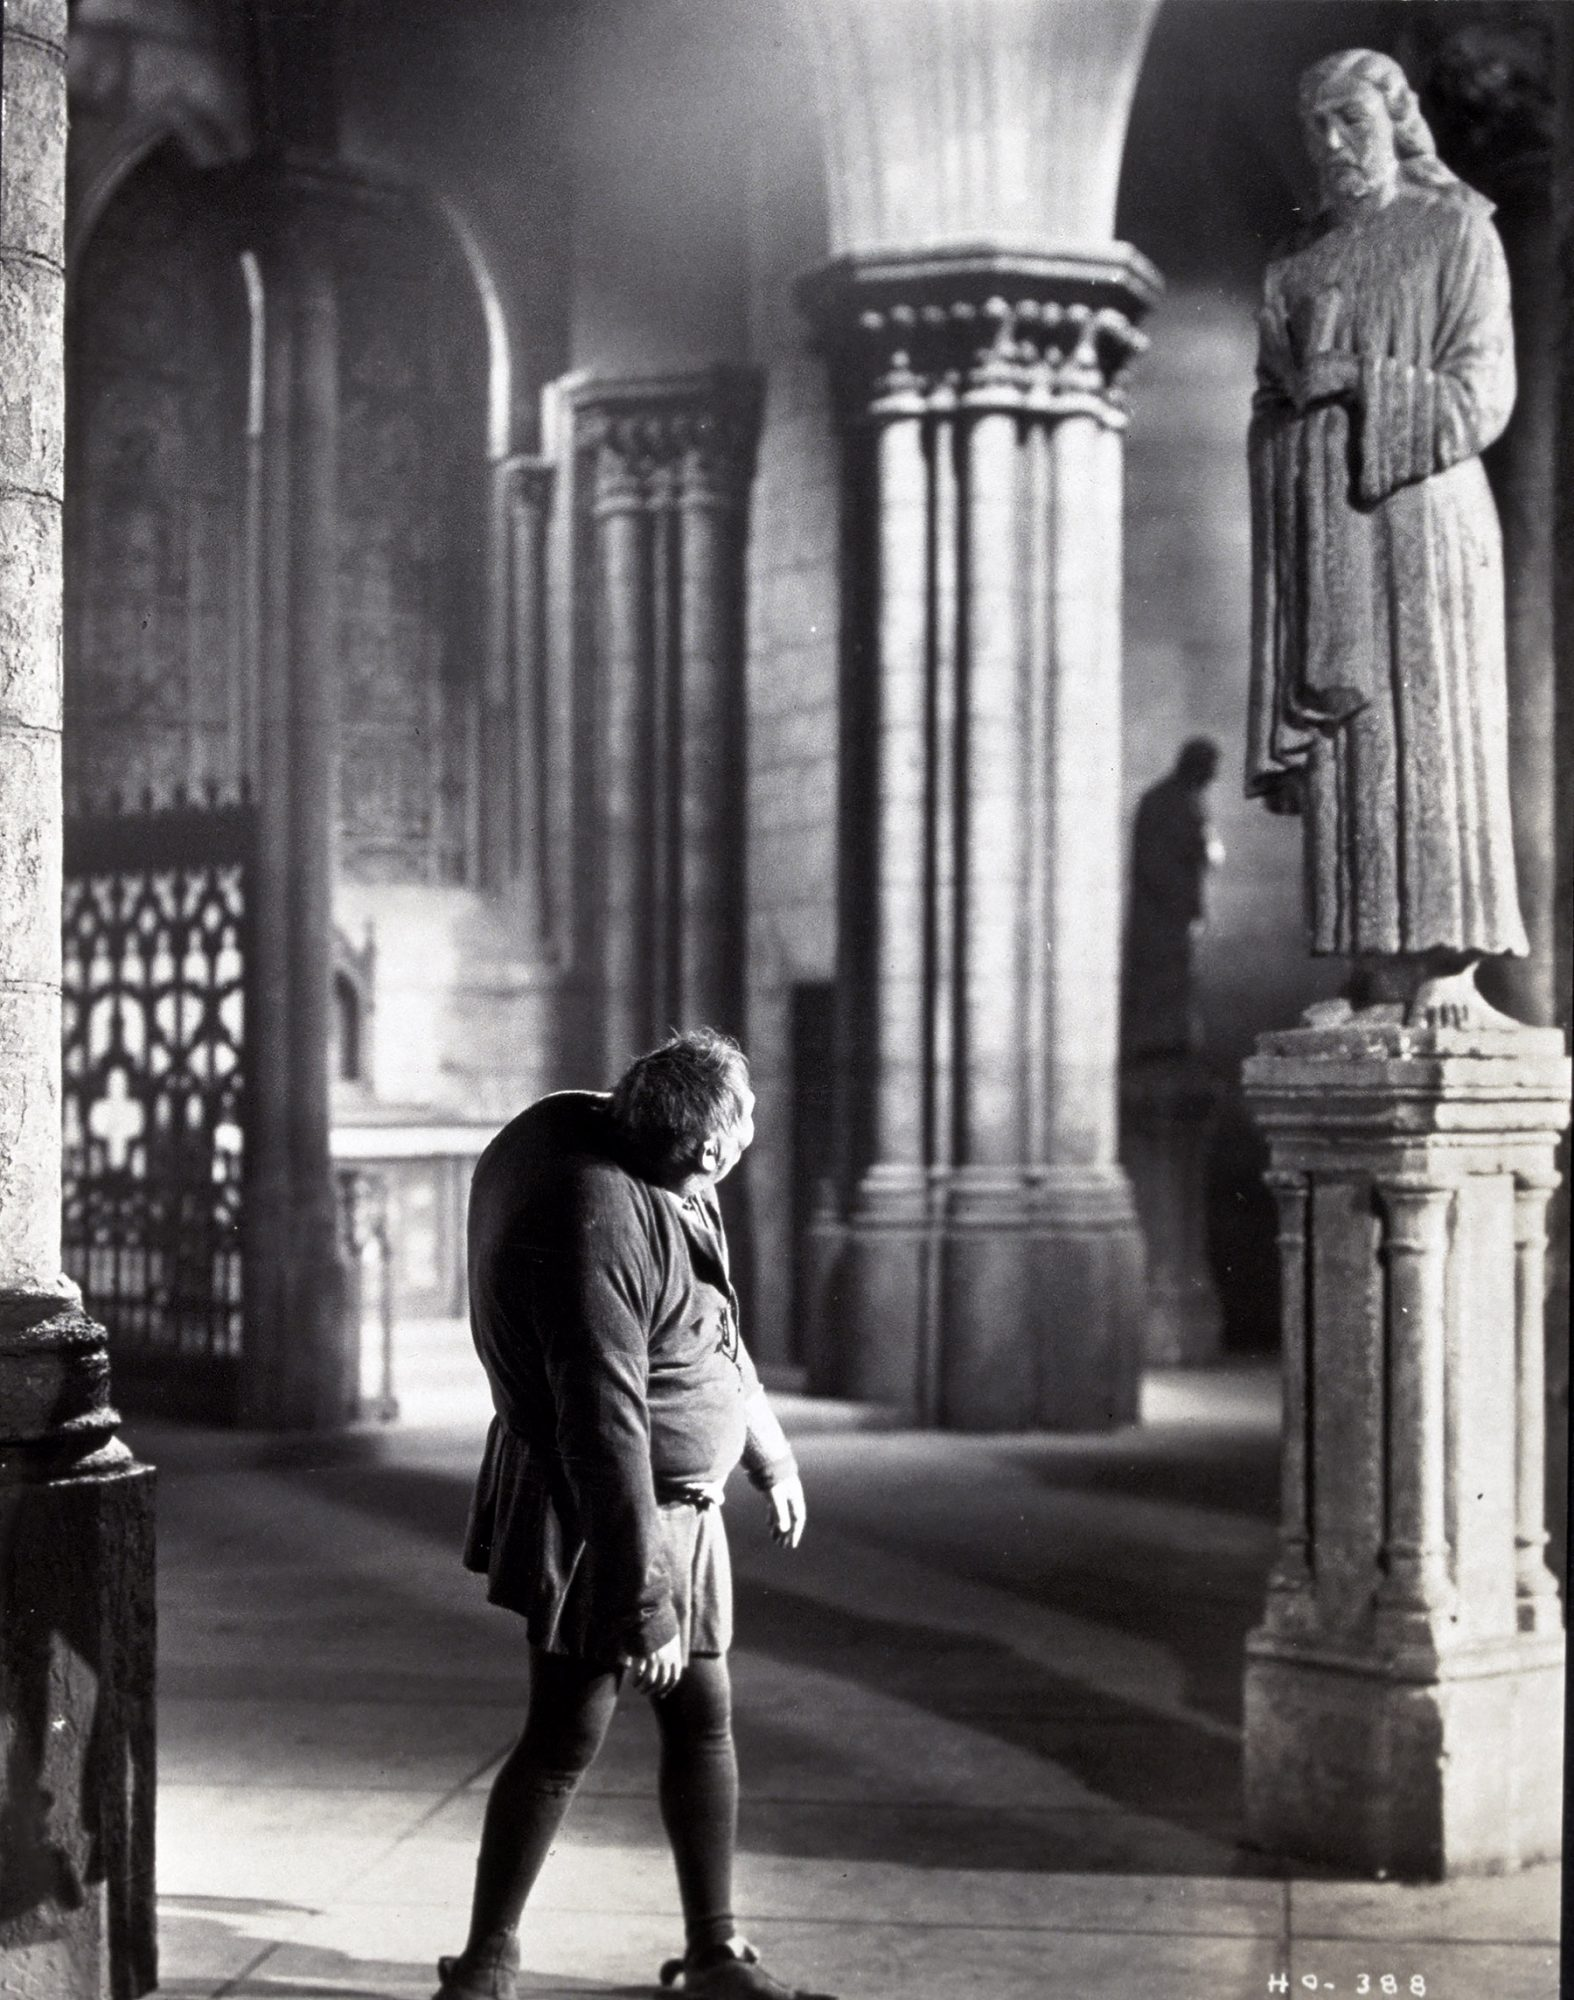 The Hunchback of Notre Dame, Charles Laughton